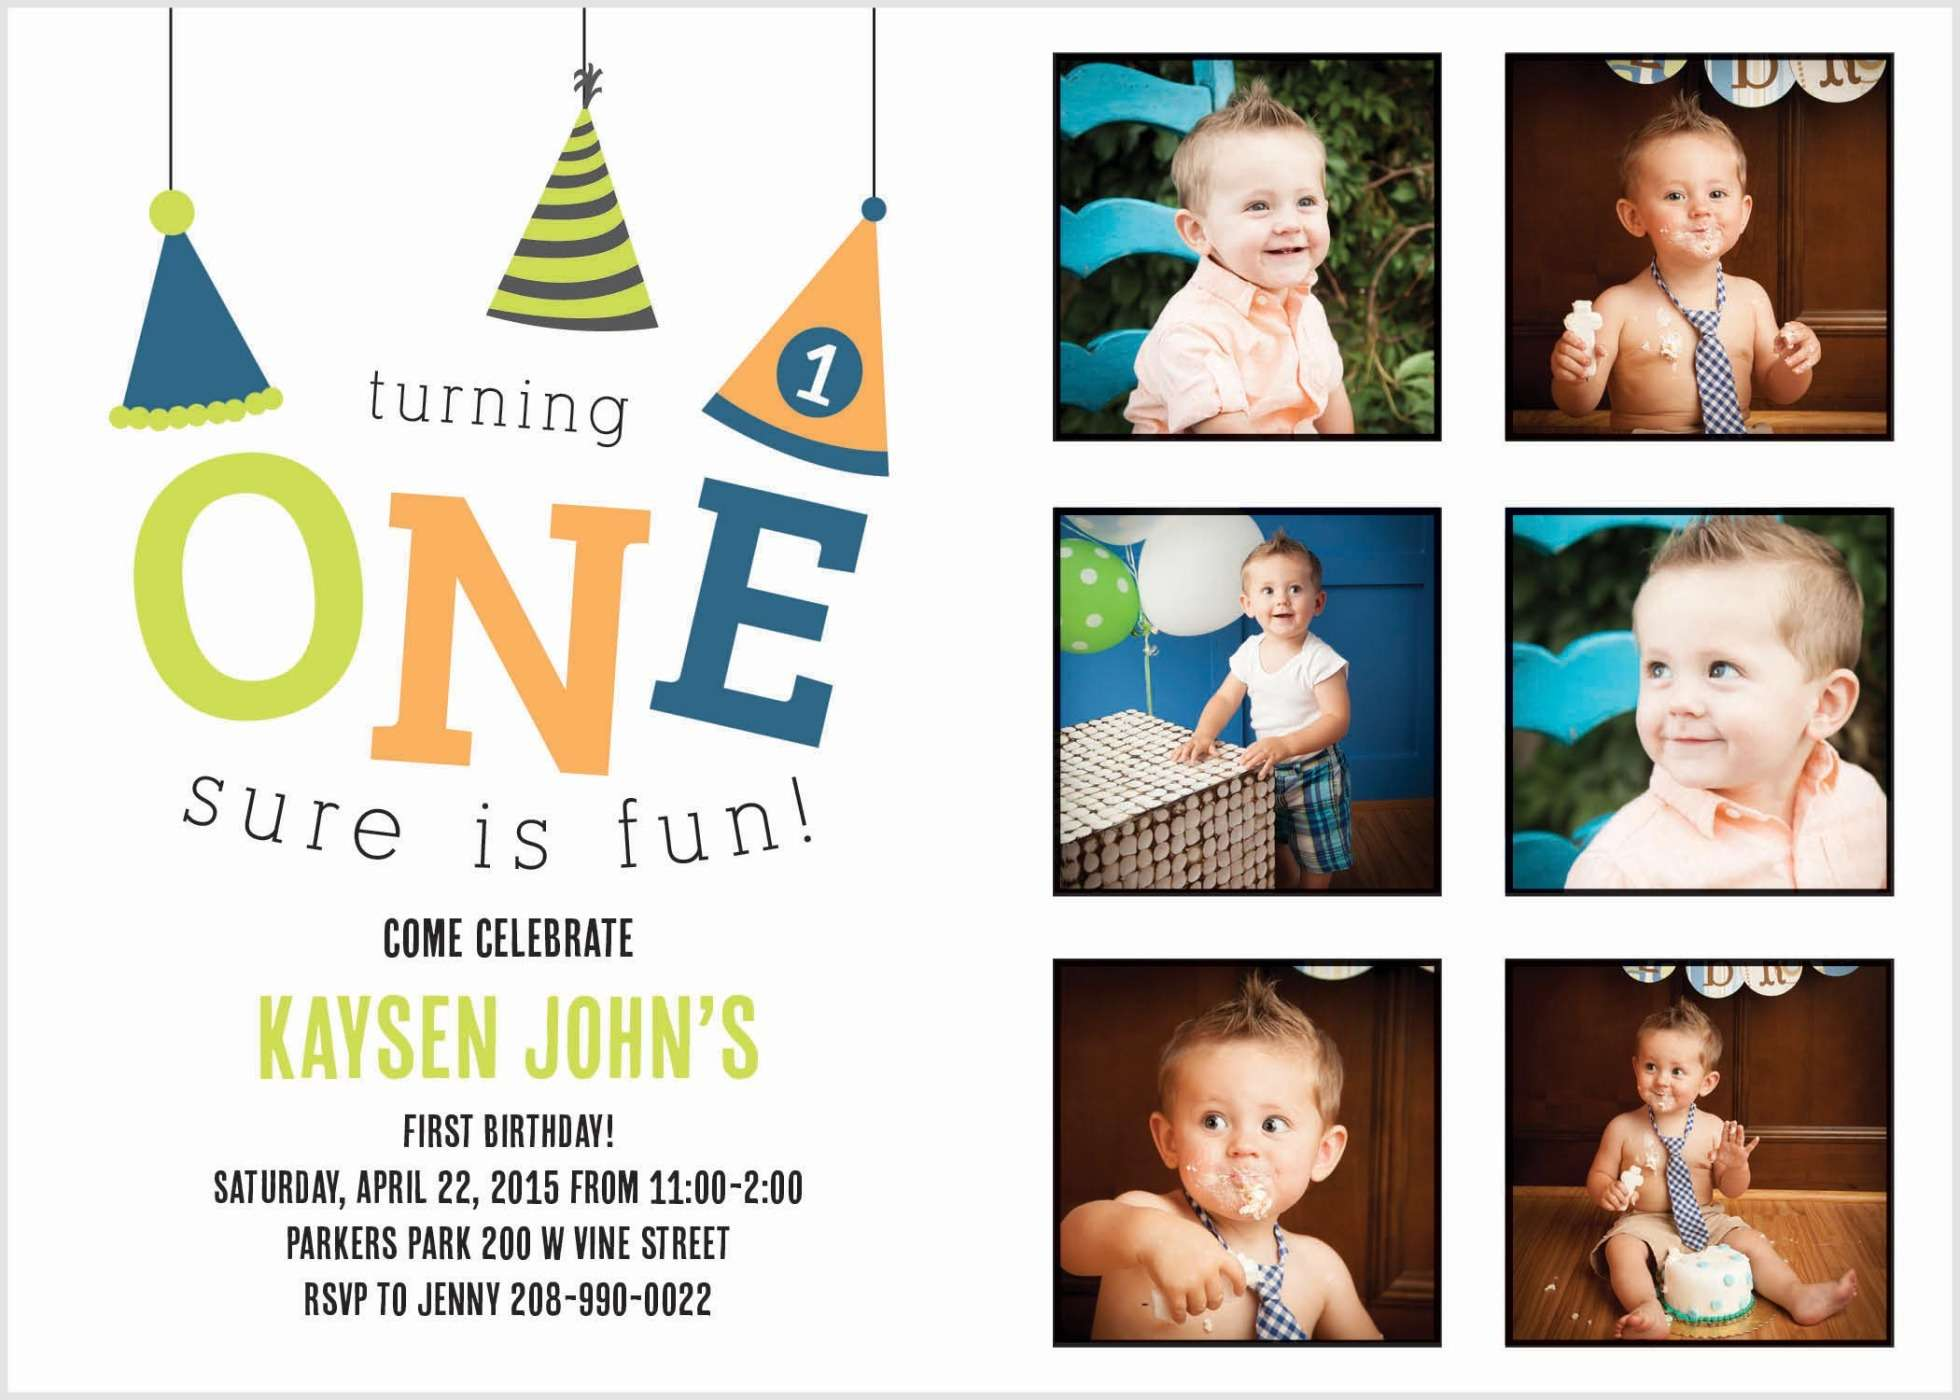 Introducing First Birthday Cards from Basic Invite